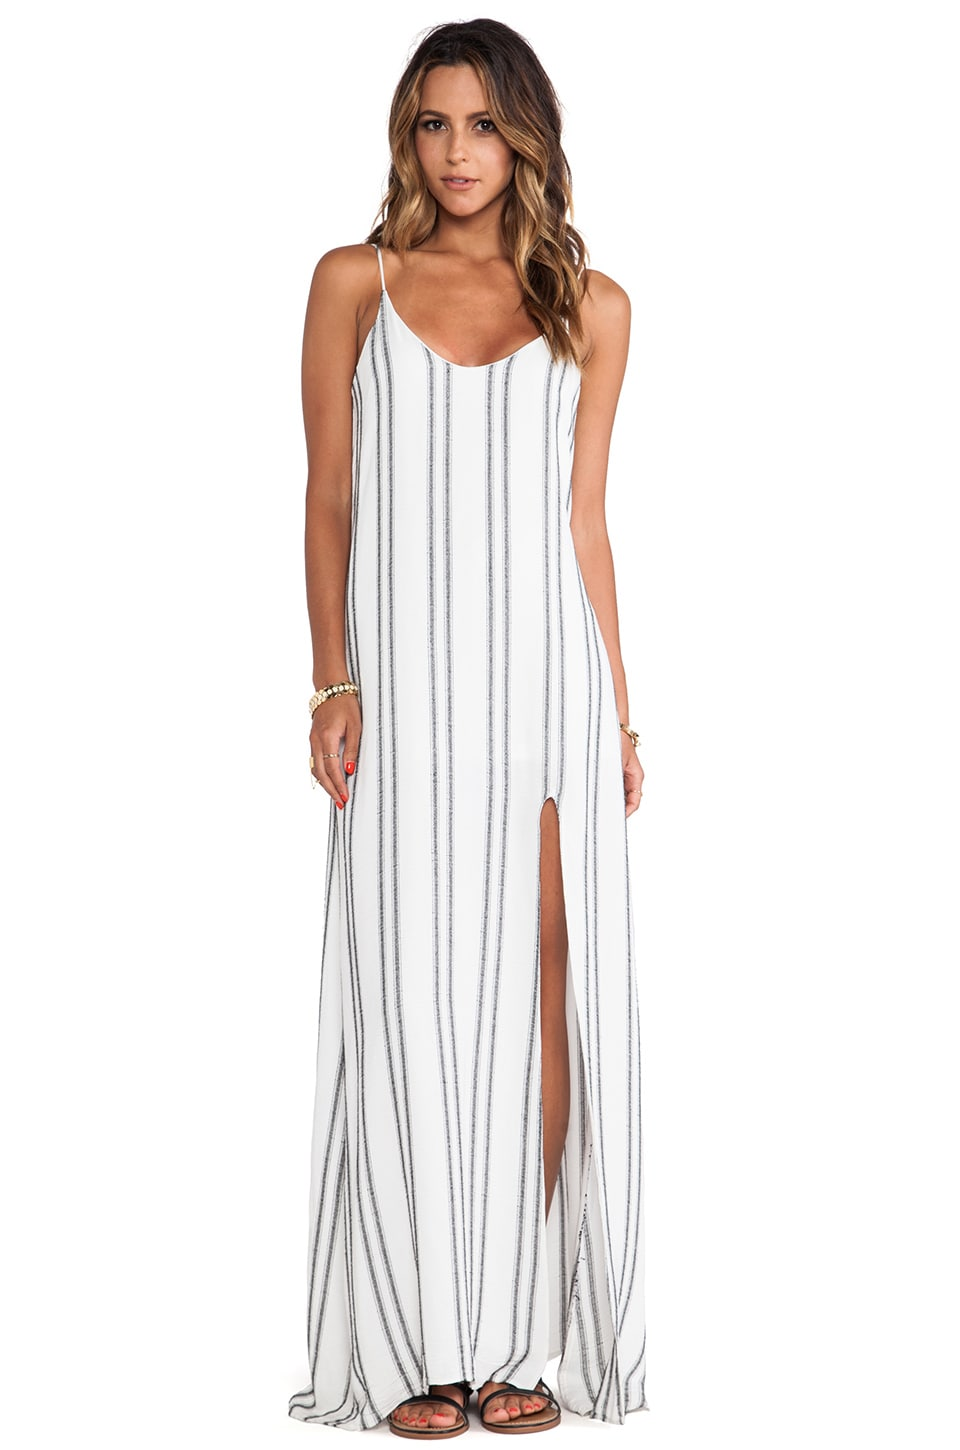 Myne Canyon Maxi Dress in Yacht